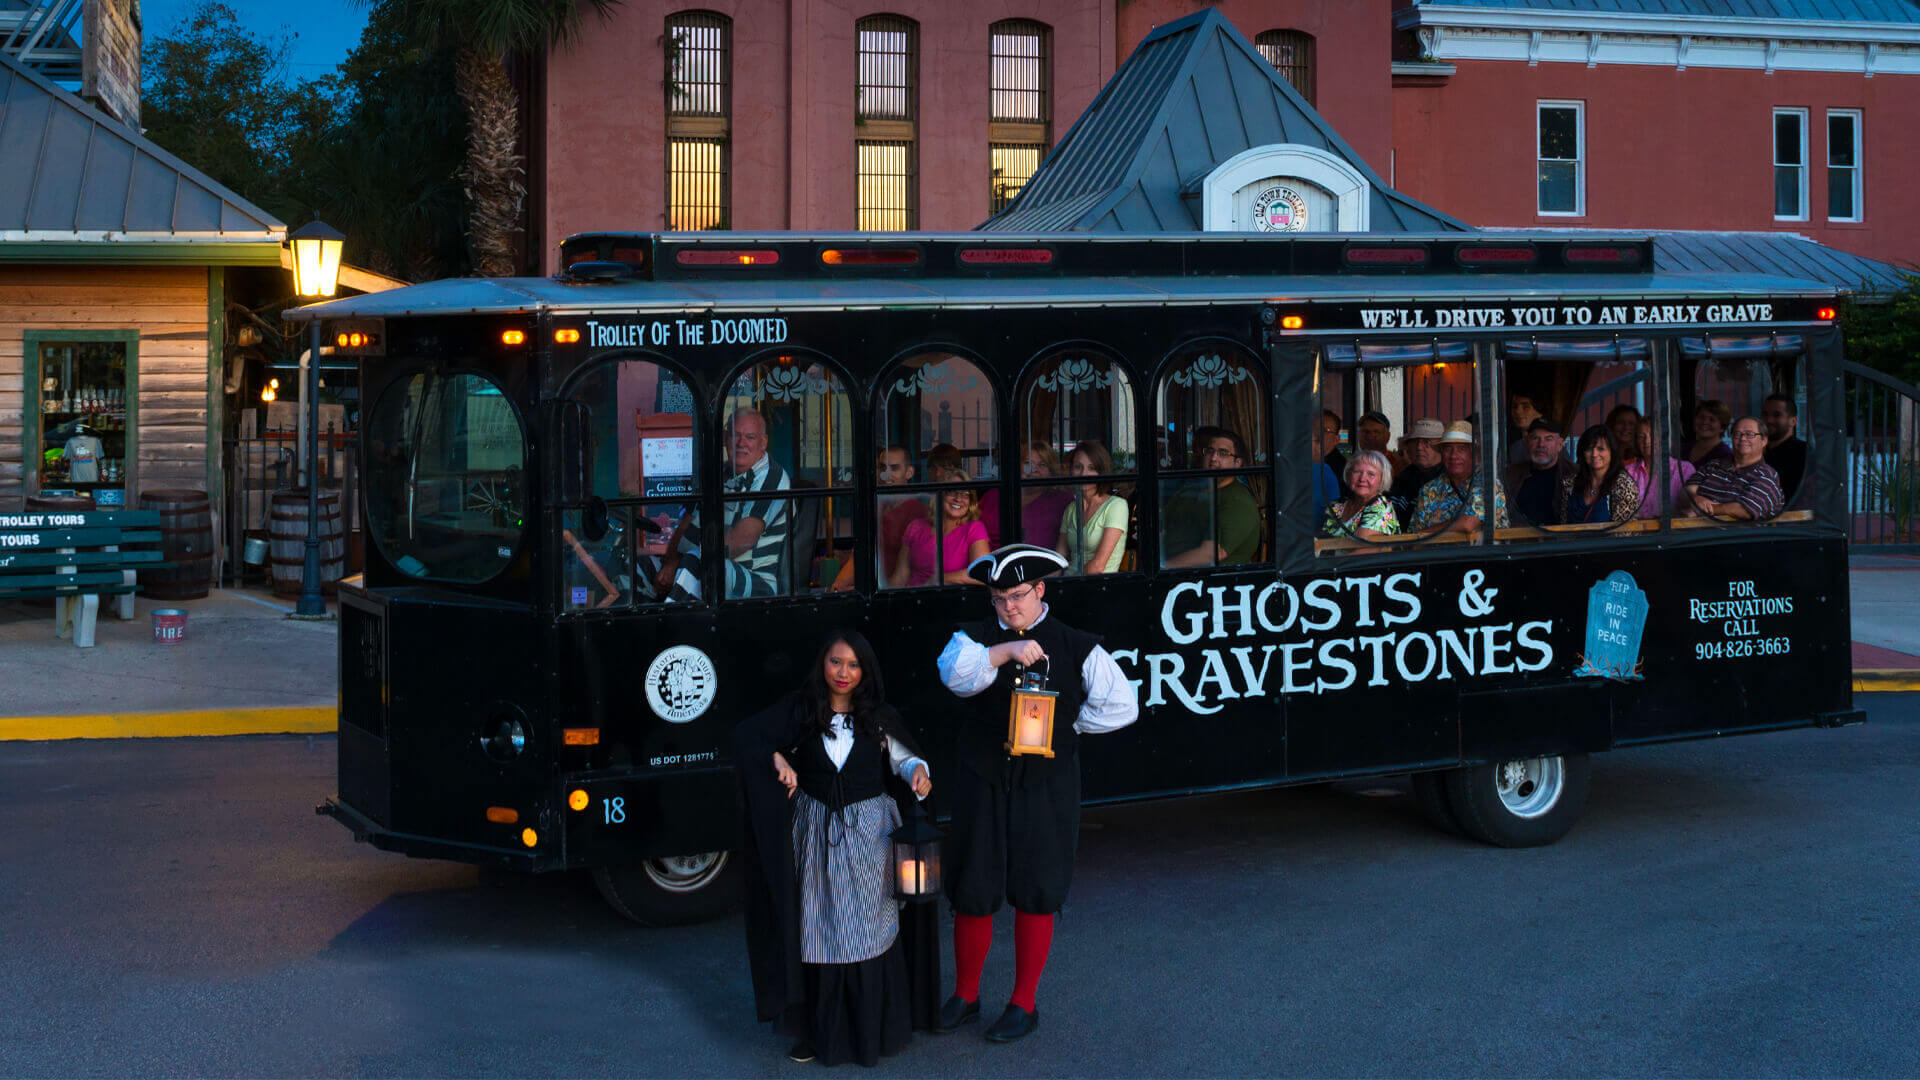 St Augustine ghost tour trolley